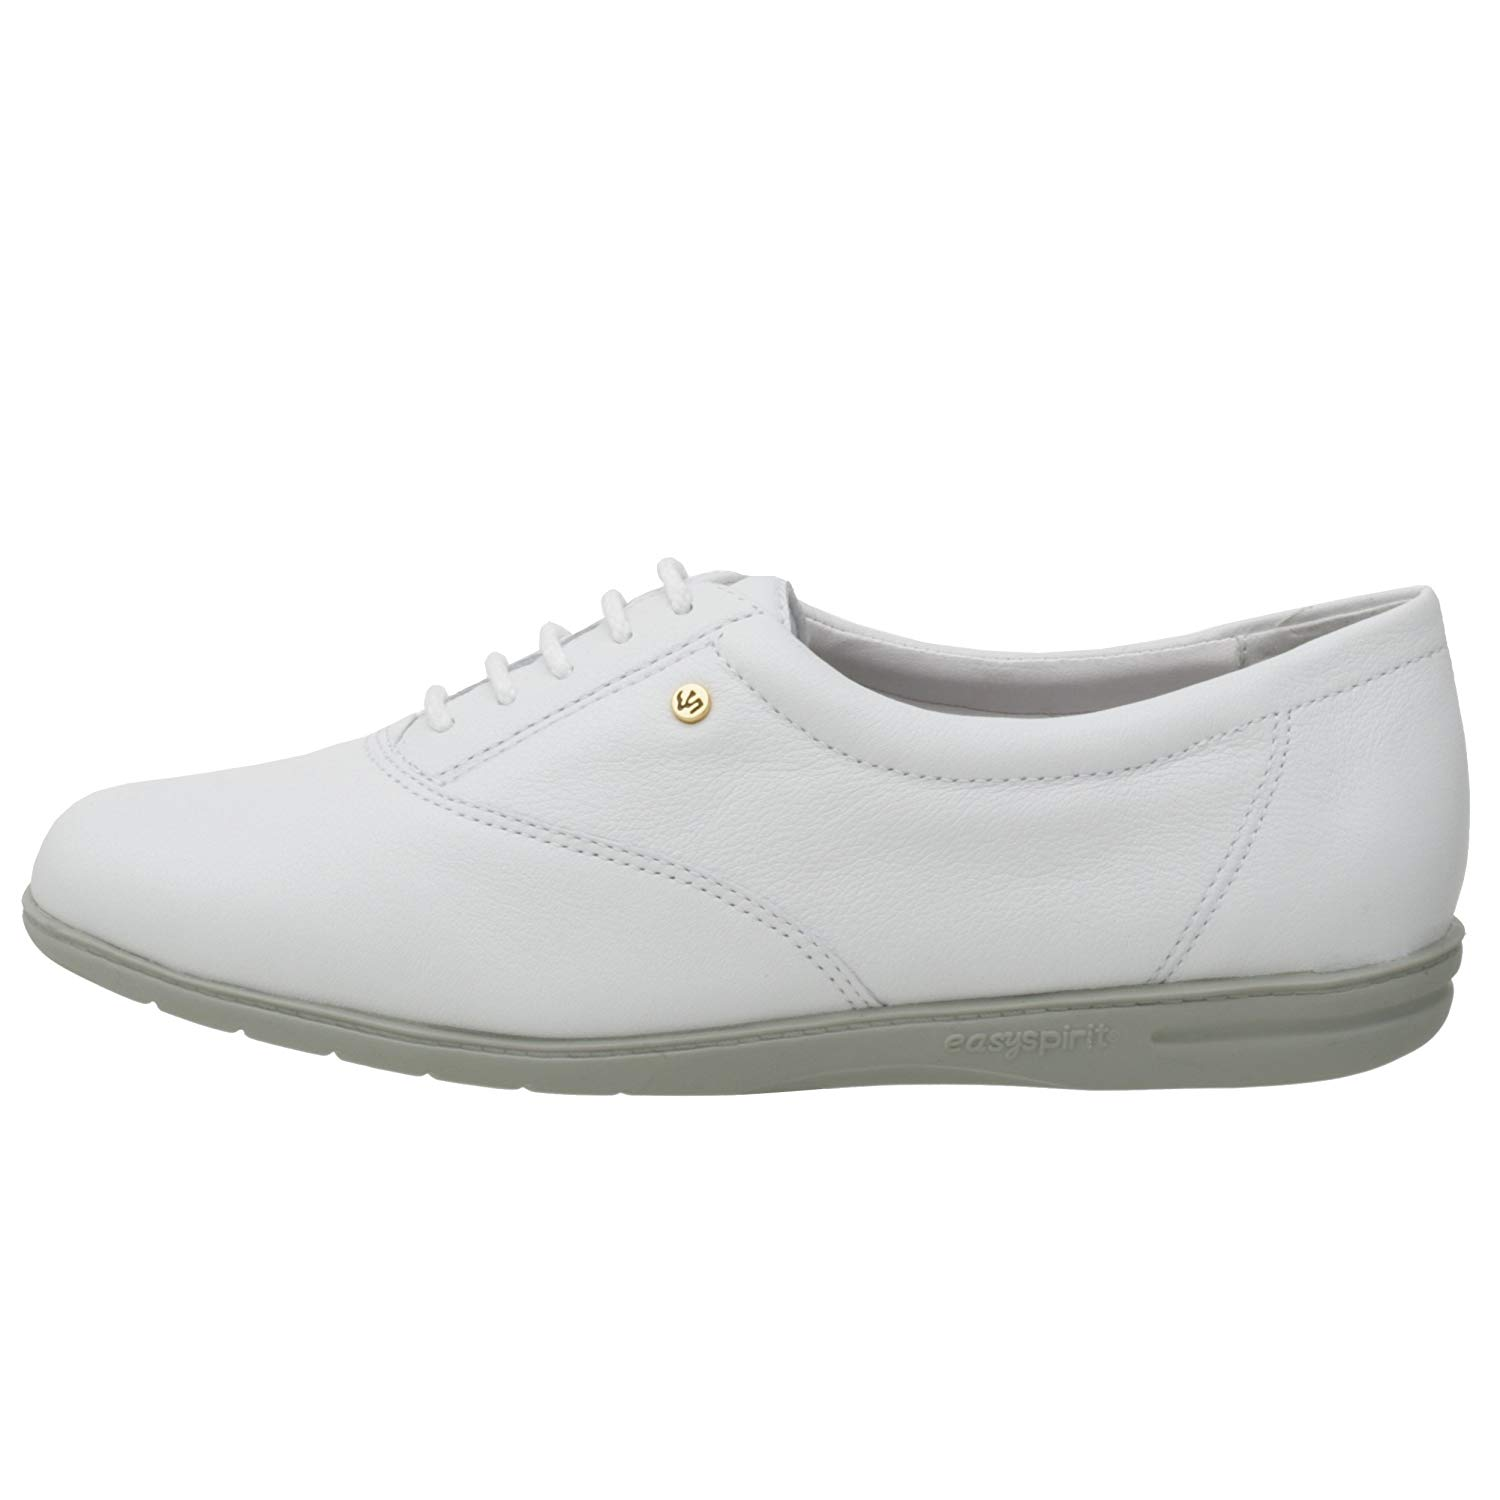 dc5f8323c5 Details about Easy Spirit Womens Motion Leather Closed Toe Oxfords